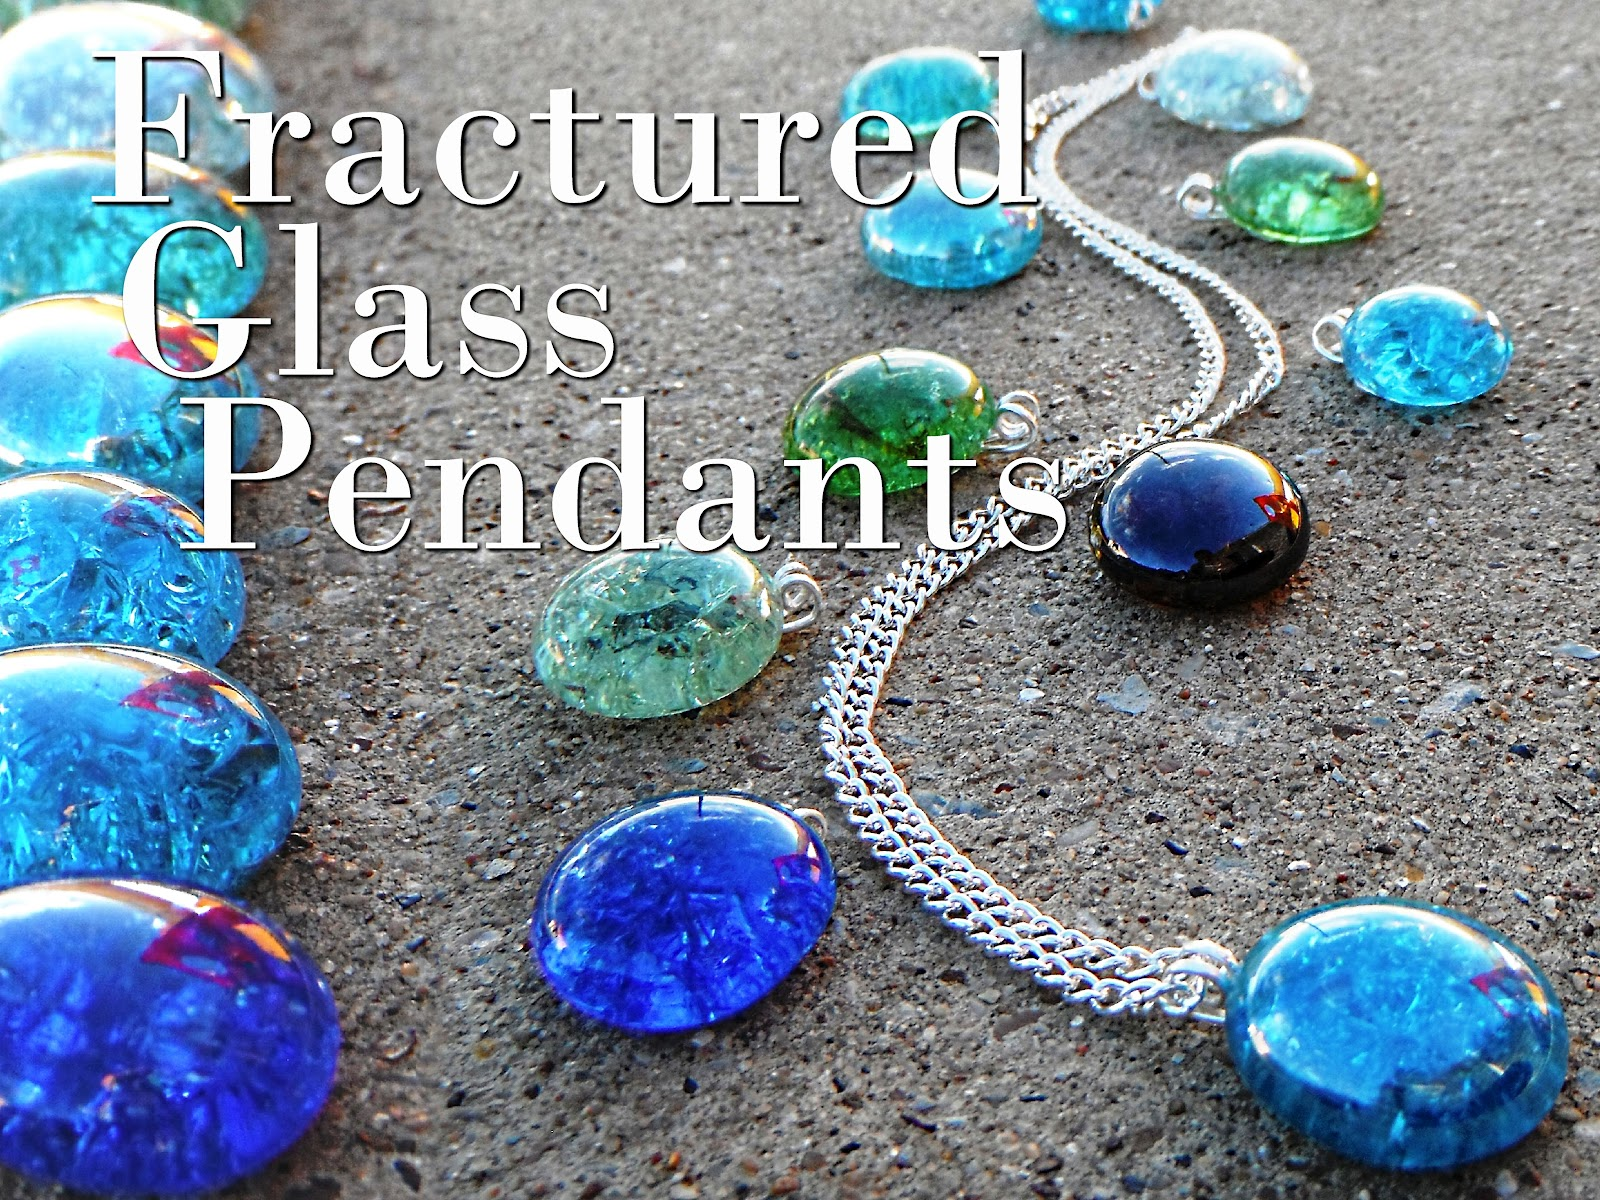 Flat glass marbles crafts - I Watched Some Videos On Making Fried Marbles Or Baked Marbles Since That S A Common Way To Do It Now And Did Some Image Searching For Project Ideas